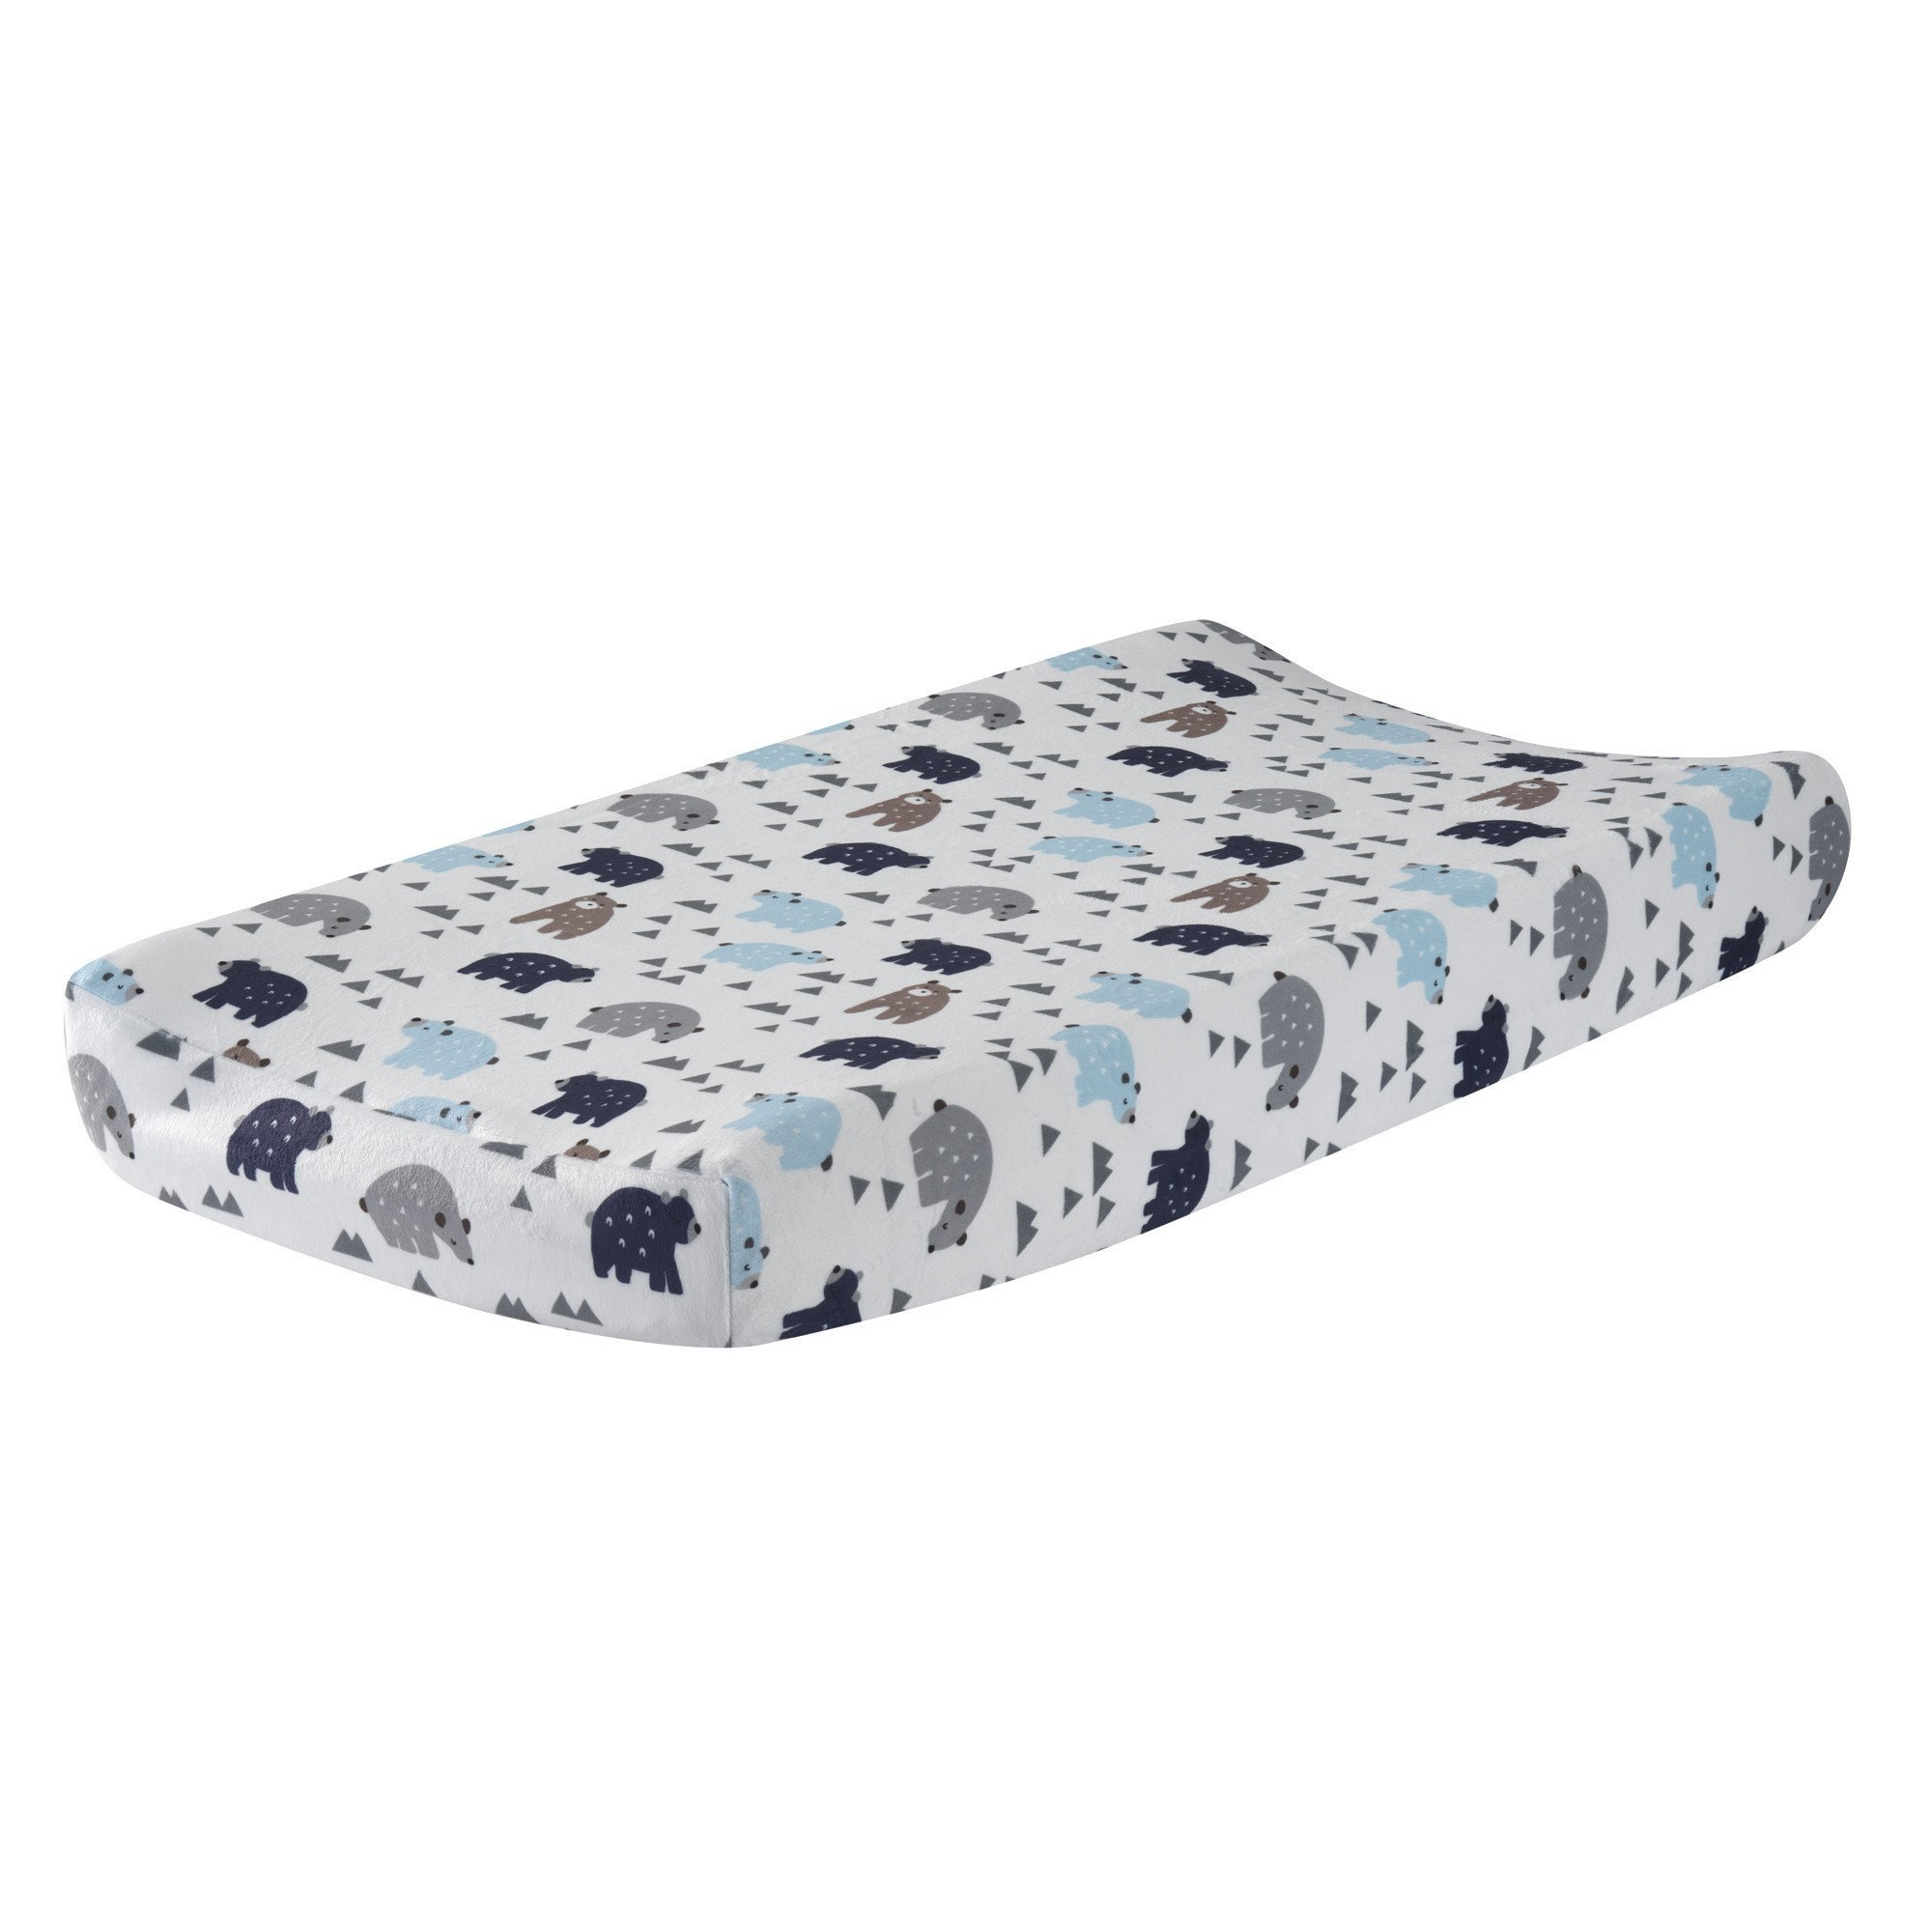 Lambs & Ivy Signature Montana Blue/Gray/Brown Bear Changing Pad Cover by Lambs & Ivy